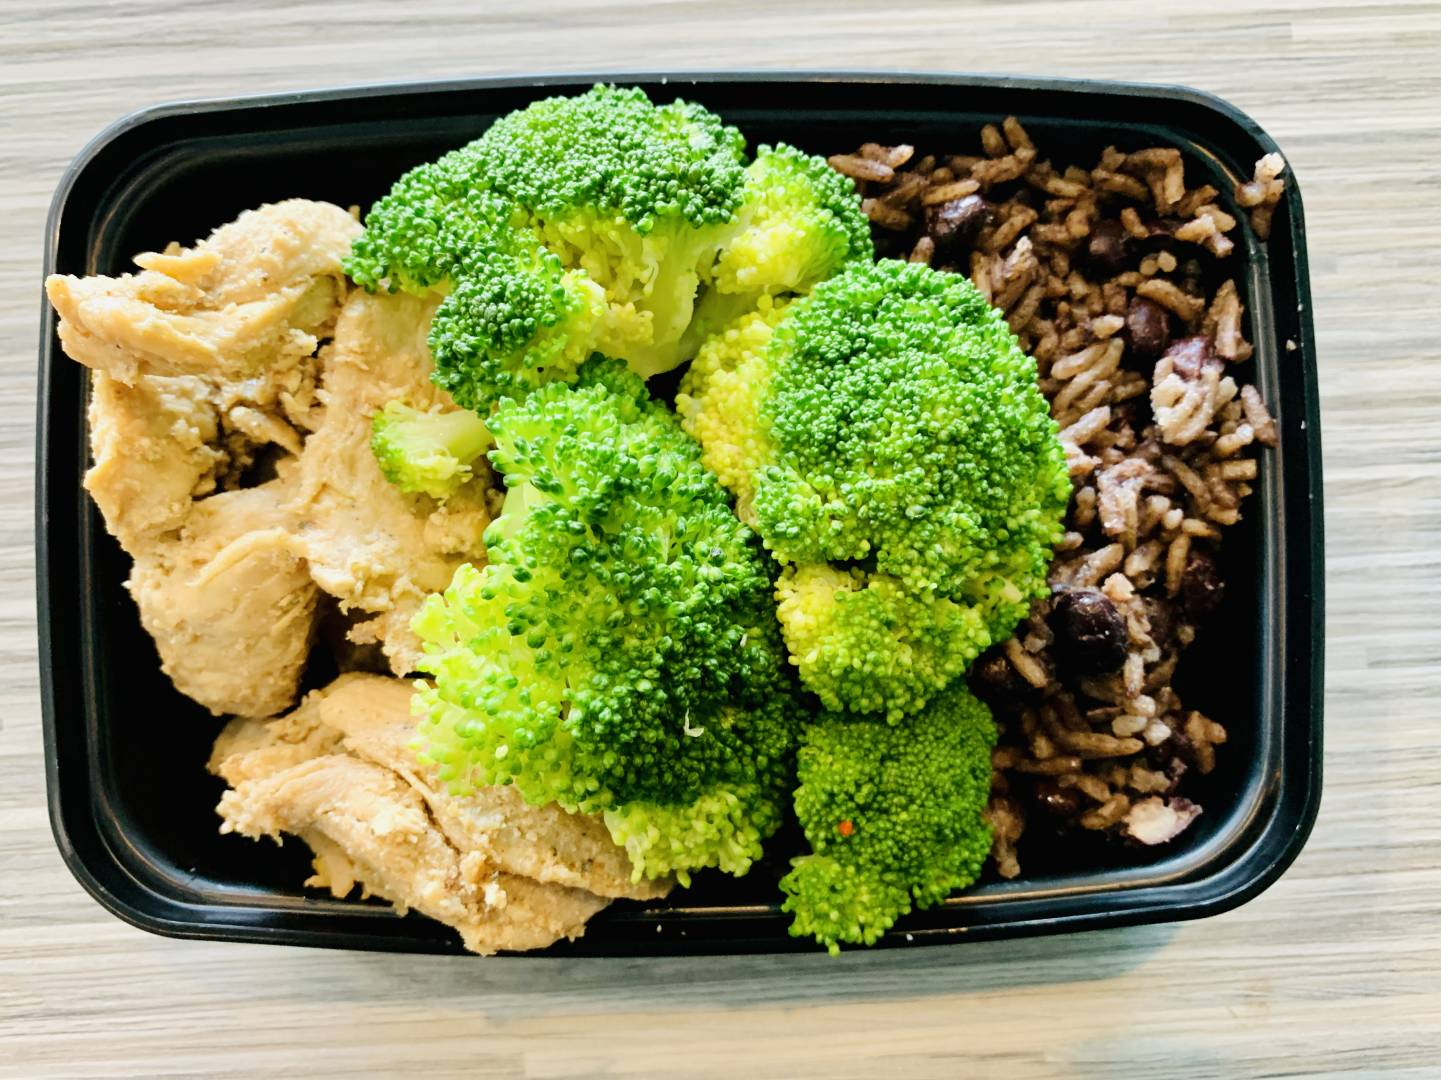 Grilled Chicken, Congris and Broccoli